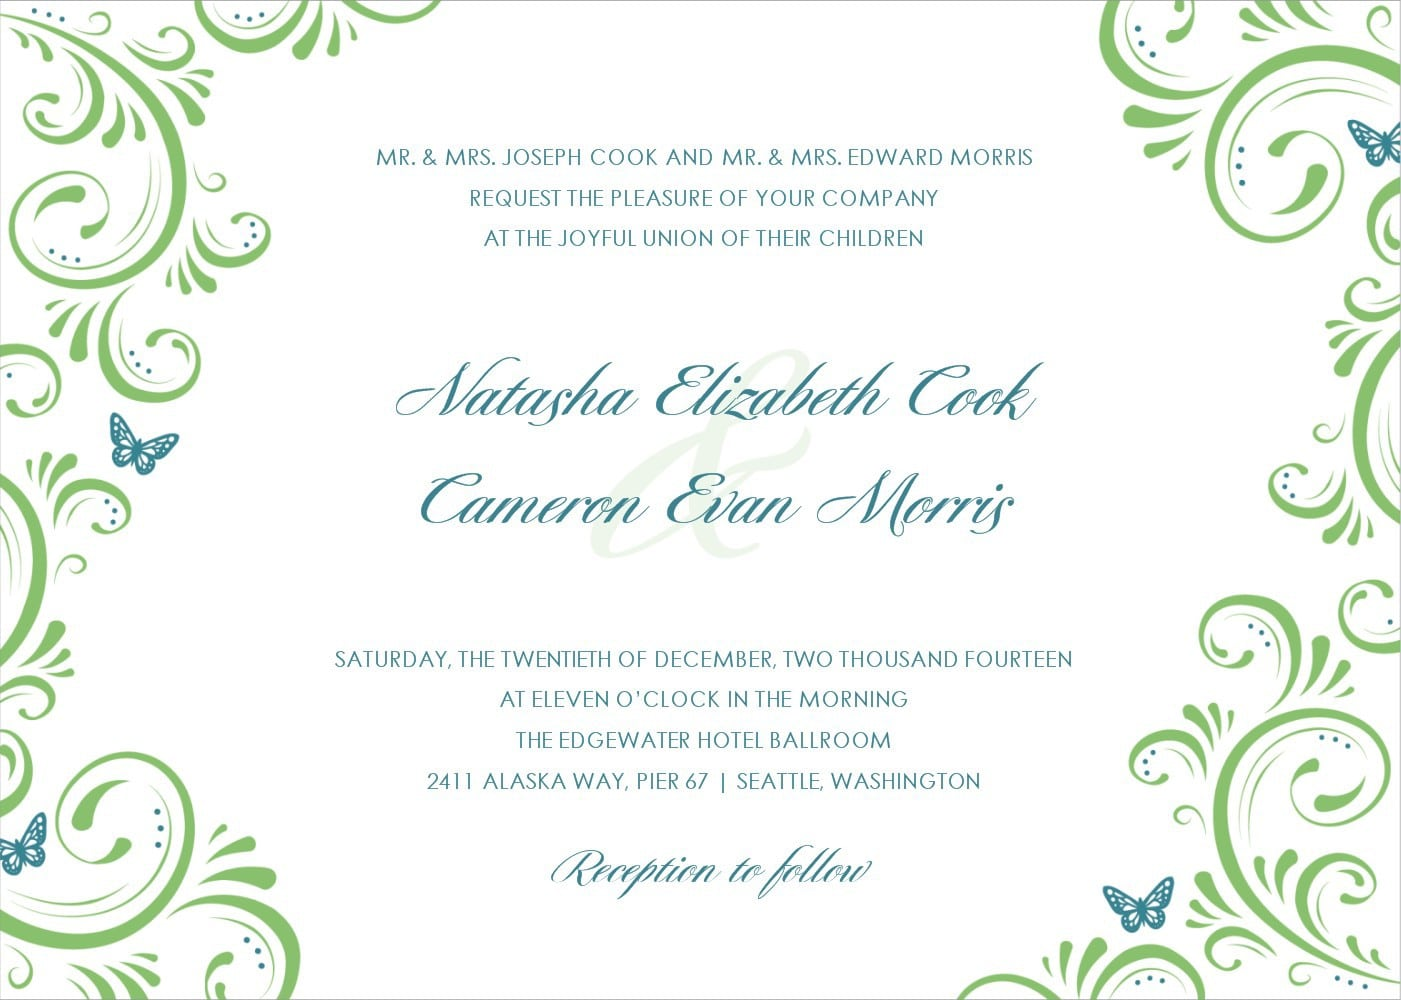 Second marriage wedding invitation template sample example format second marriage wedding invitation template sample example format download stopboris Gallery